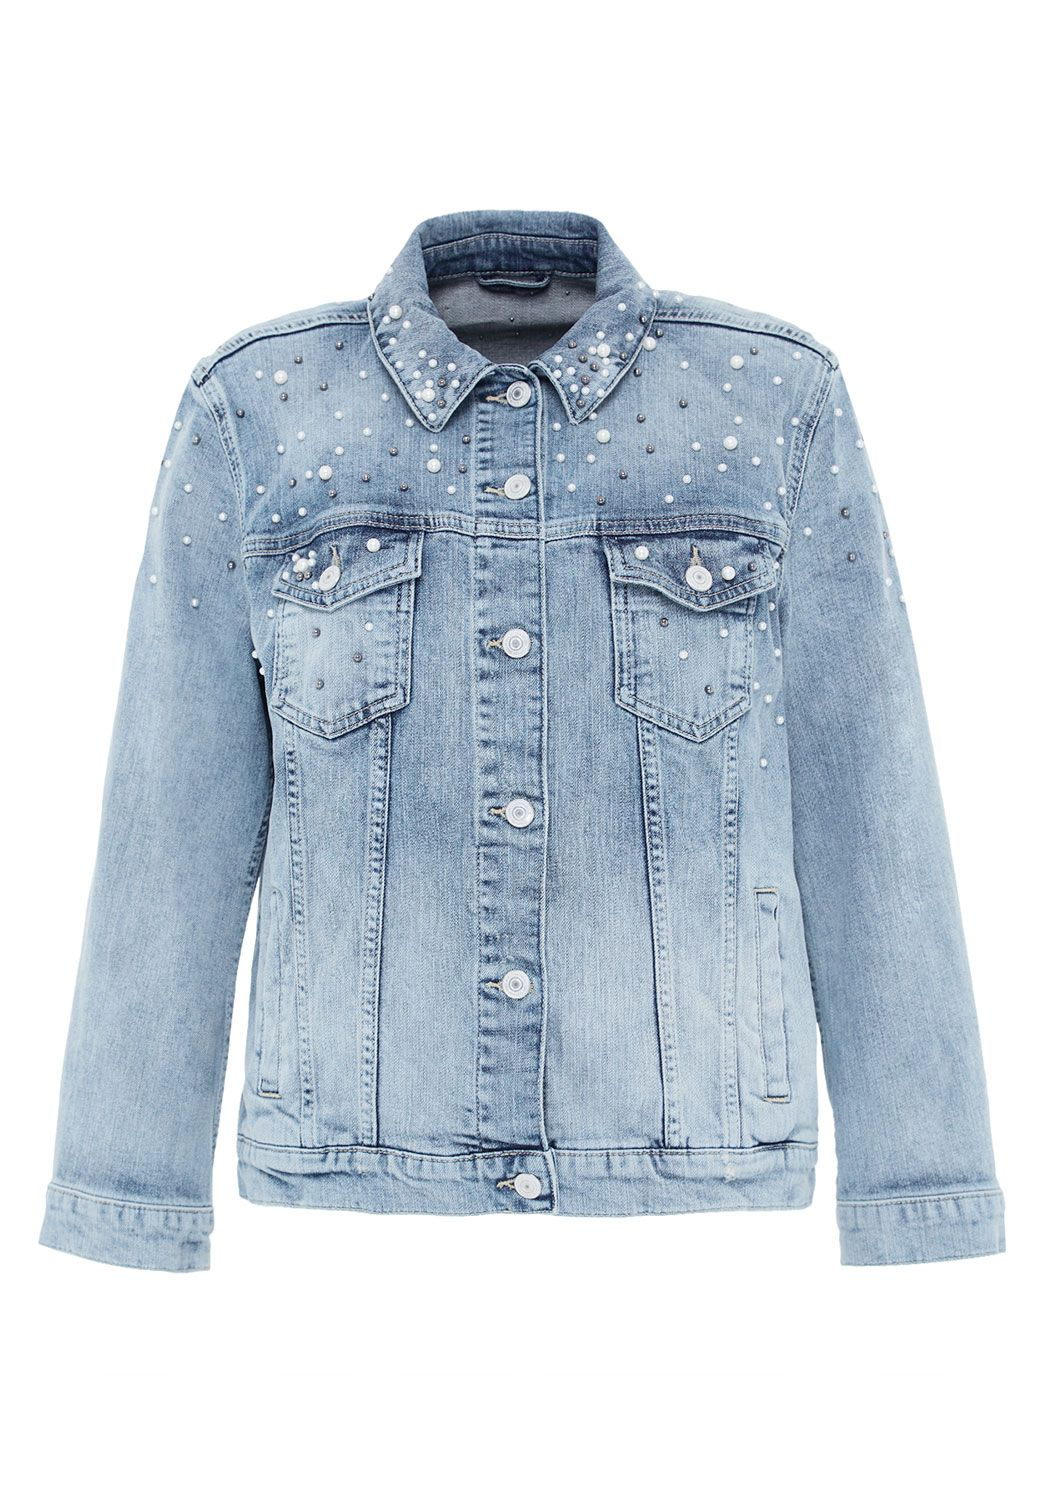 Hallhuber Bead-Embellished Denim Jacket, Denim Light Wash